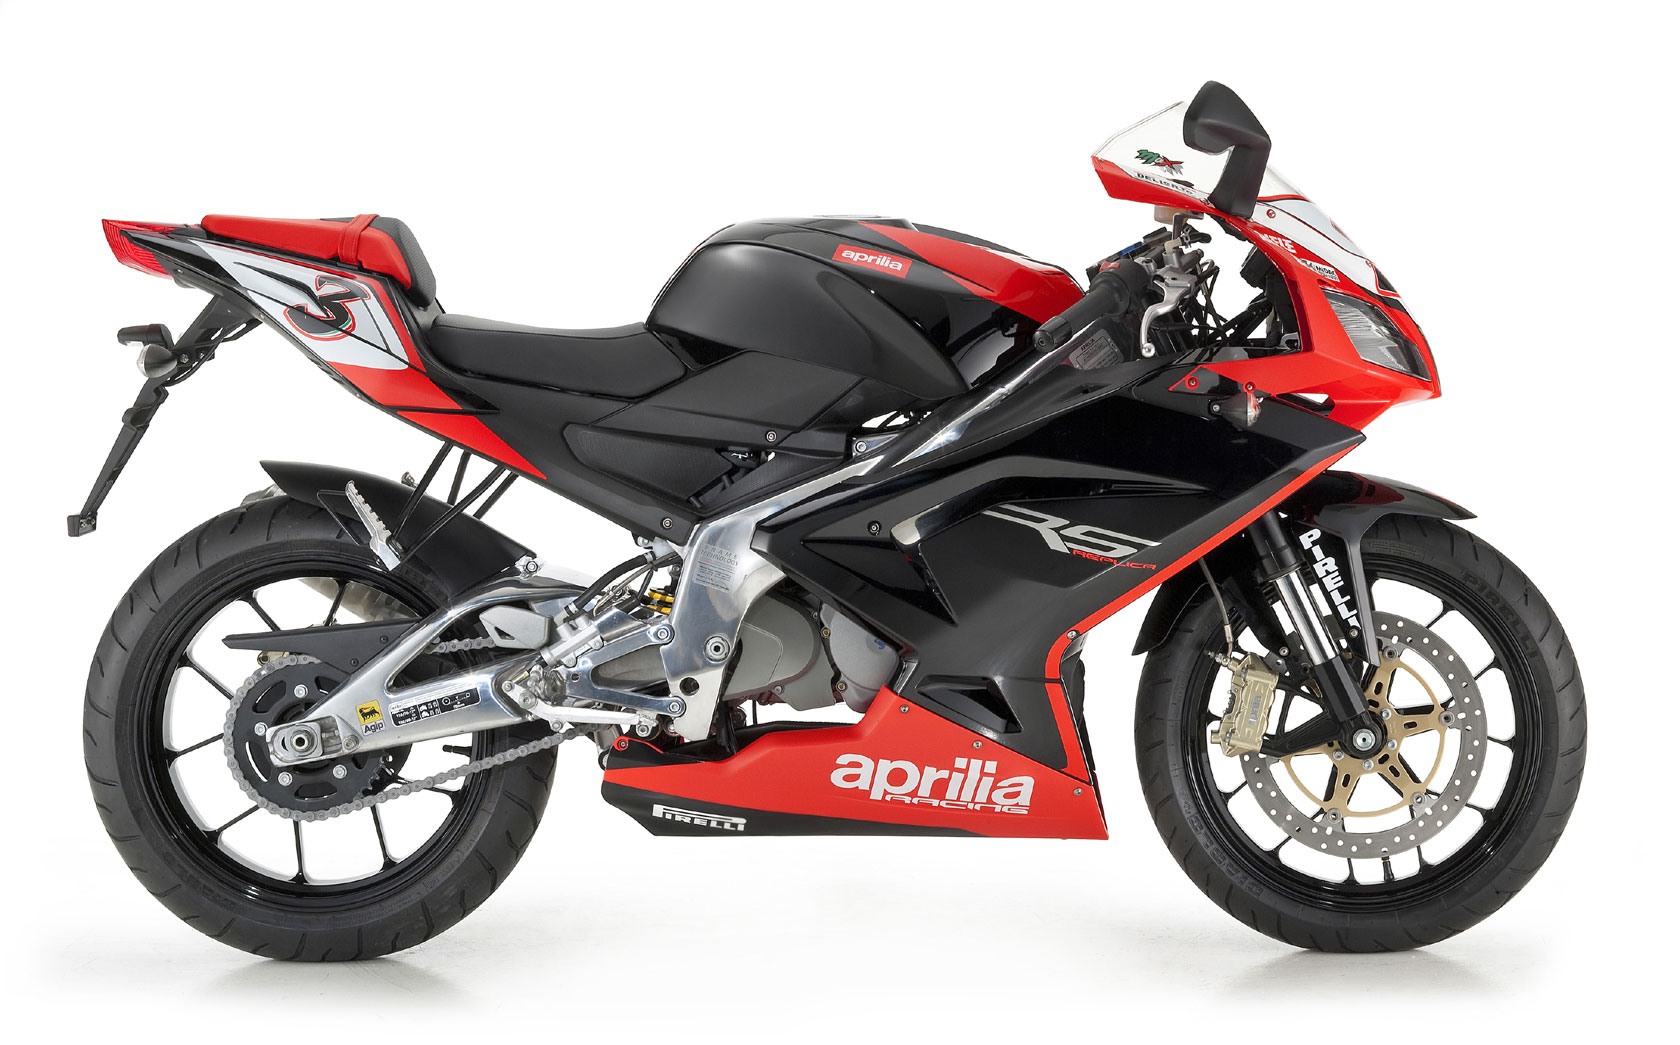 aprilia rs125 motocykle 125 opinie ceny porady. Black Bedroom Furniture Sets. Home Design Ideas